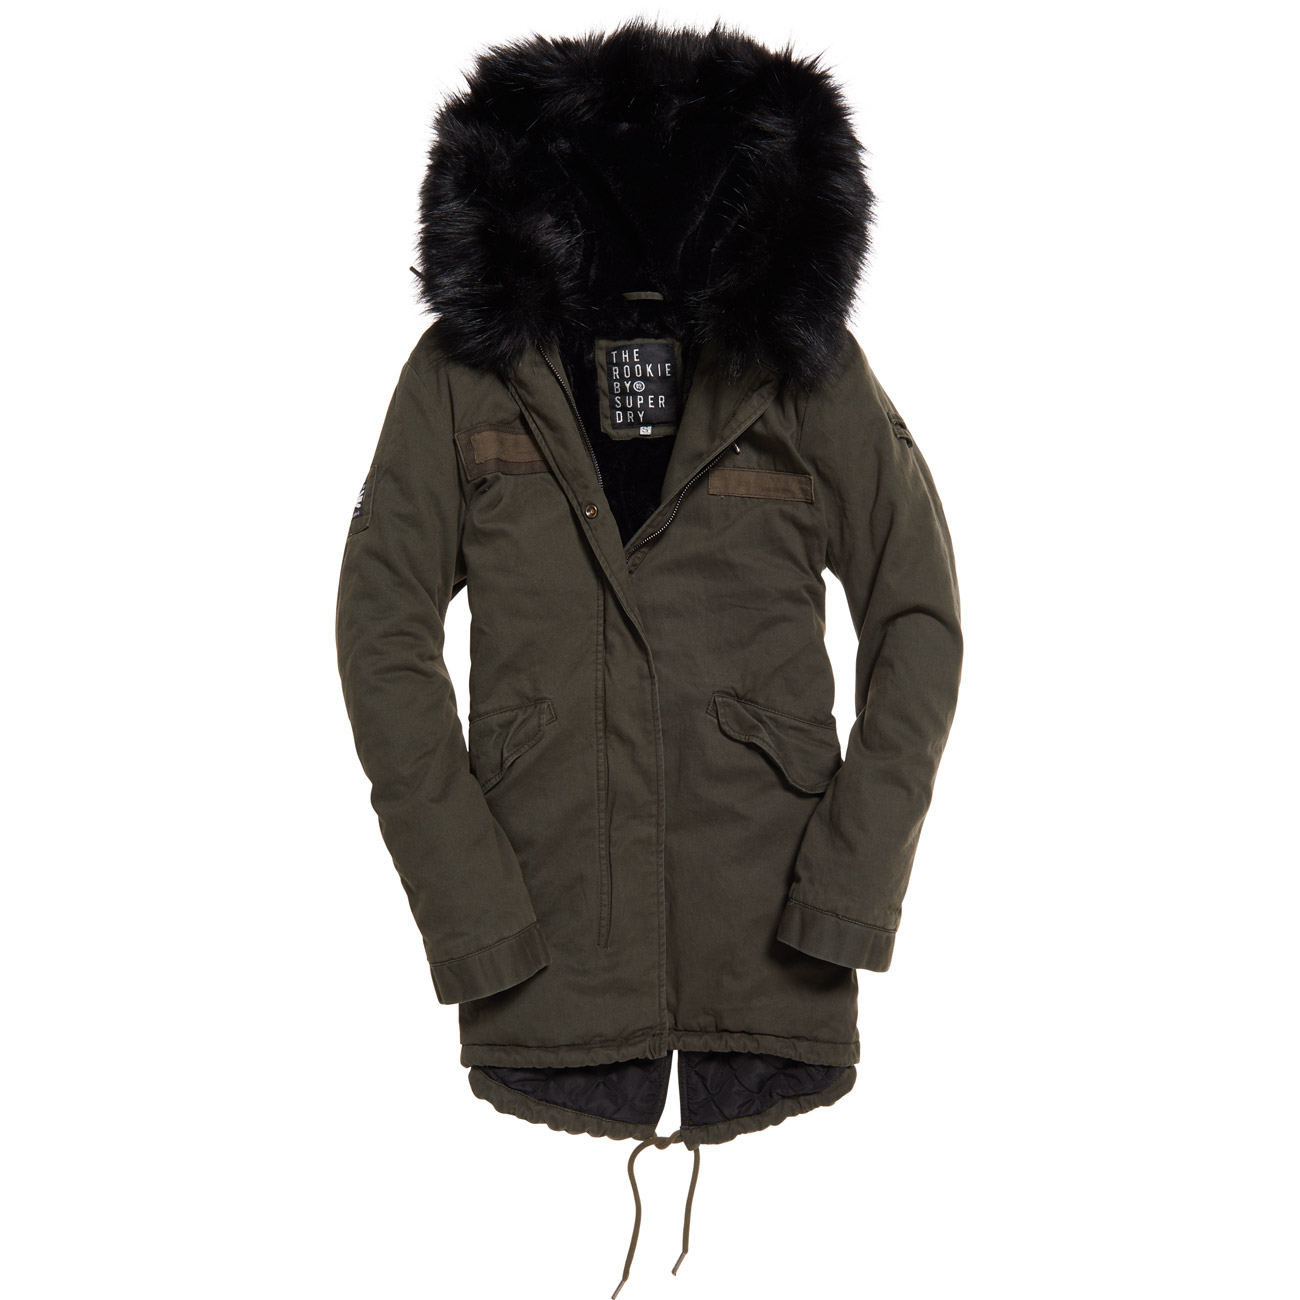 low priced a2289 f1e19 Superdry Damen Jacke ROOKIE HAWK PARKA